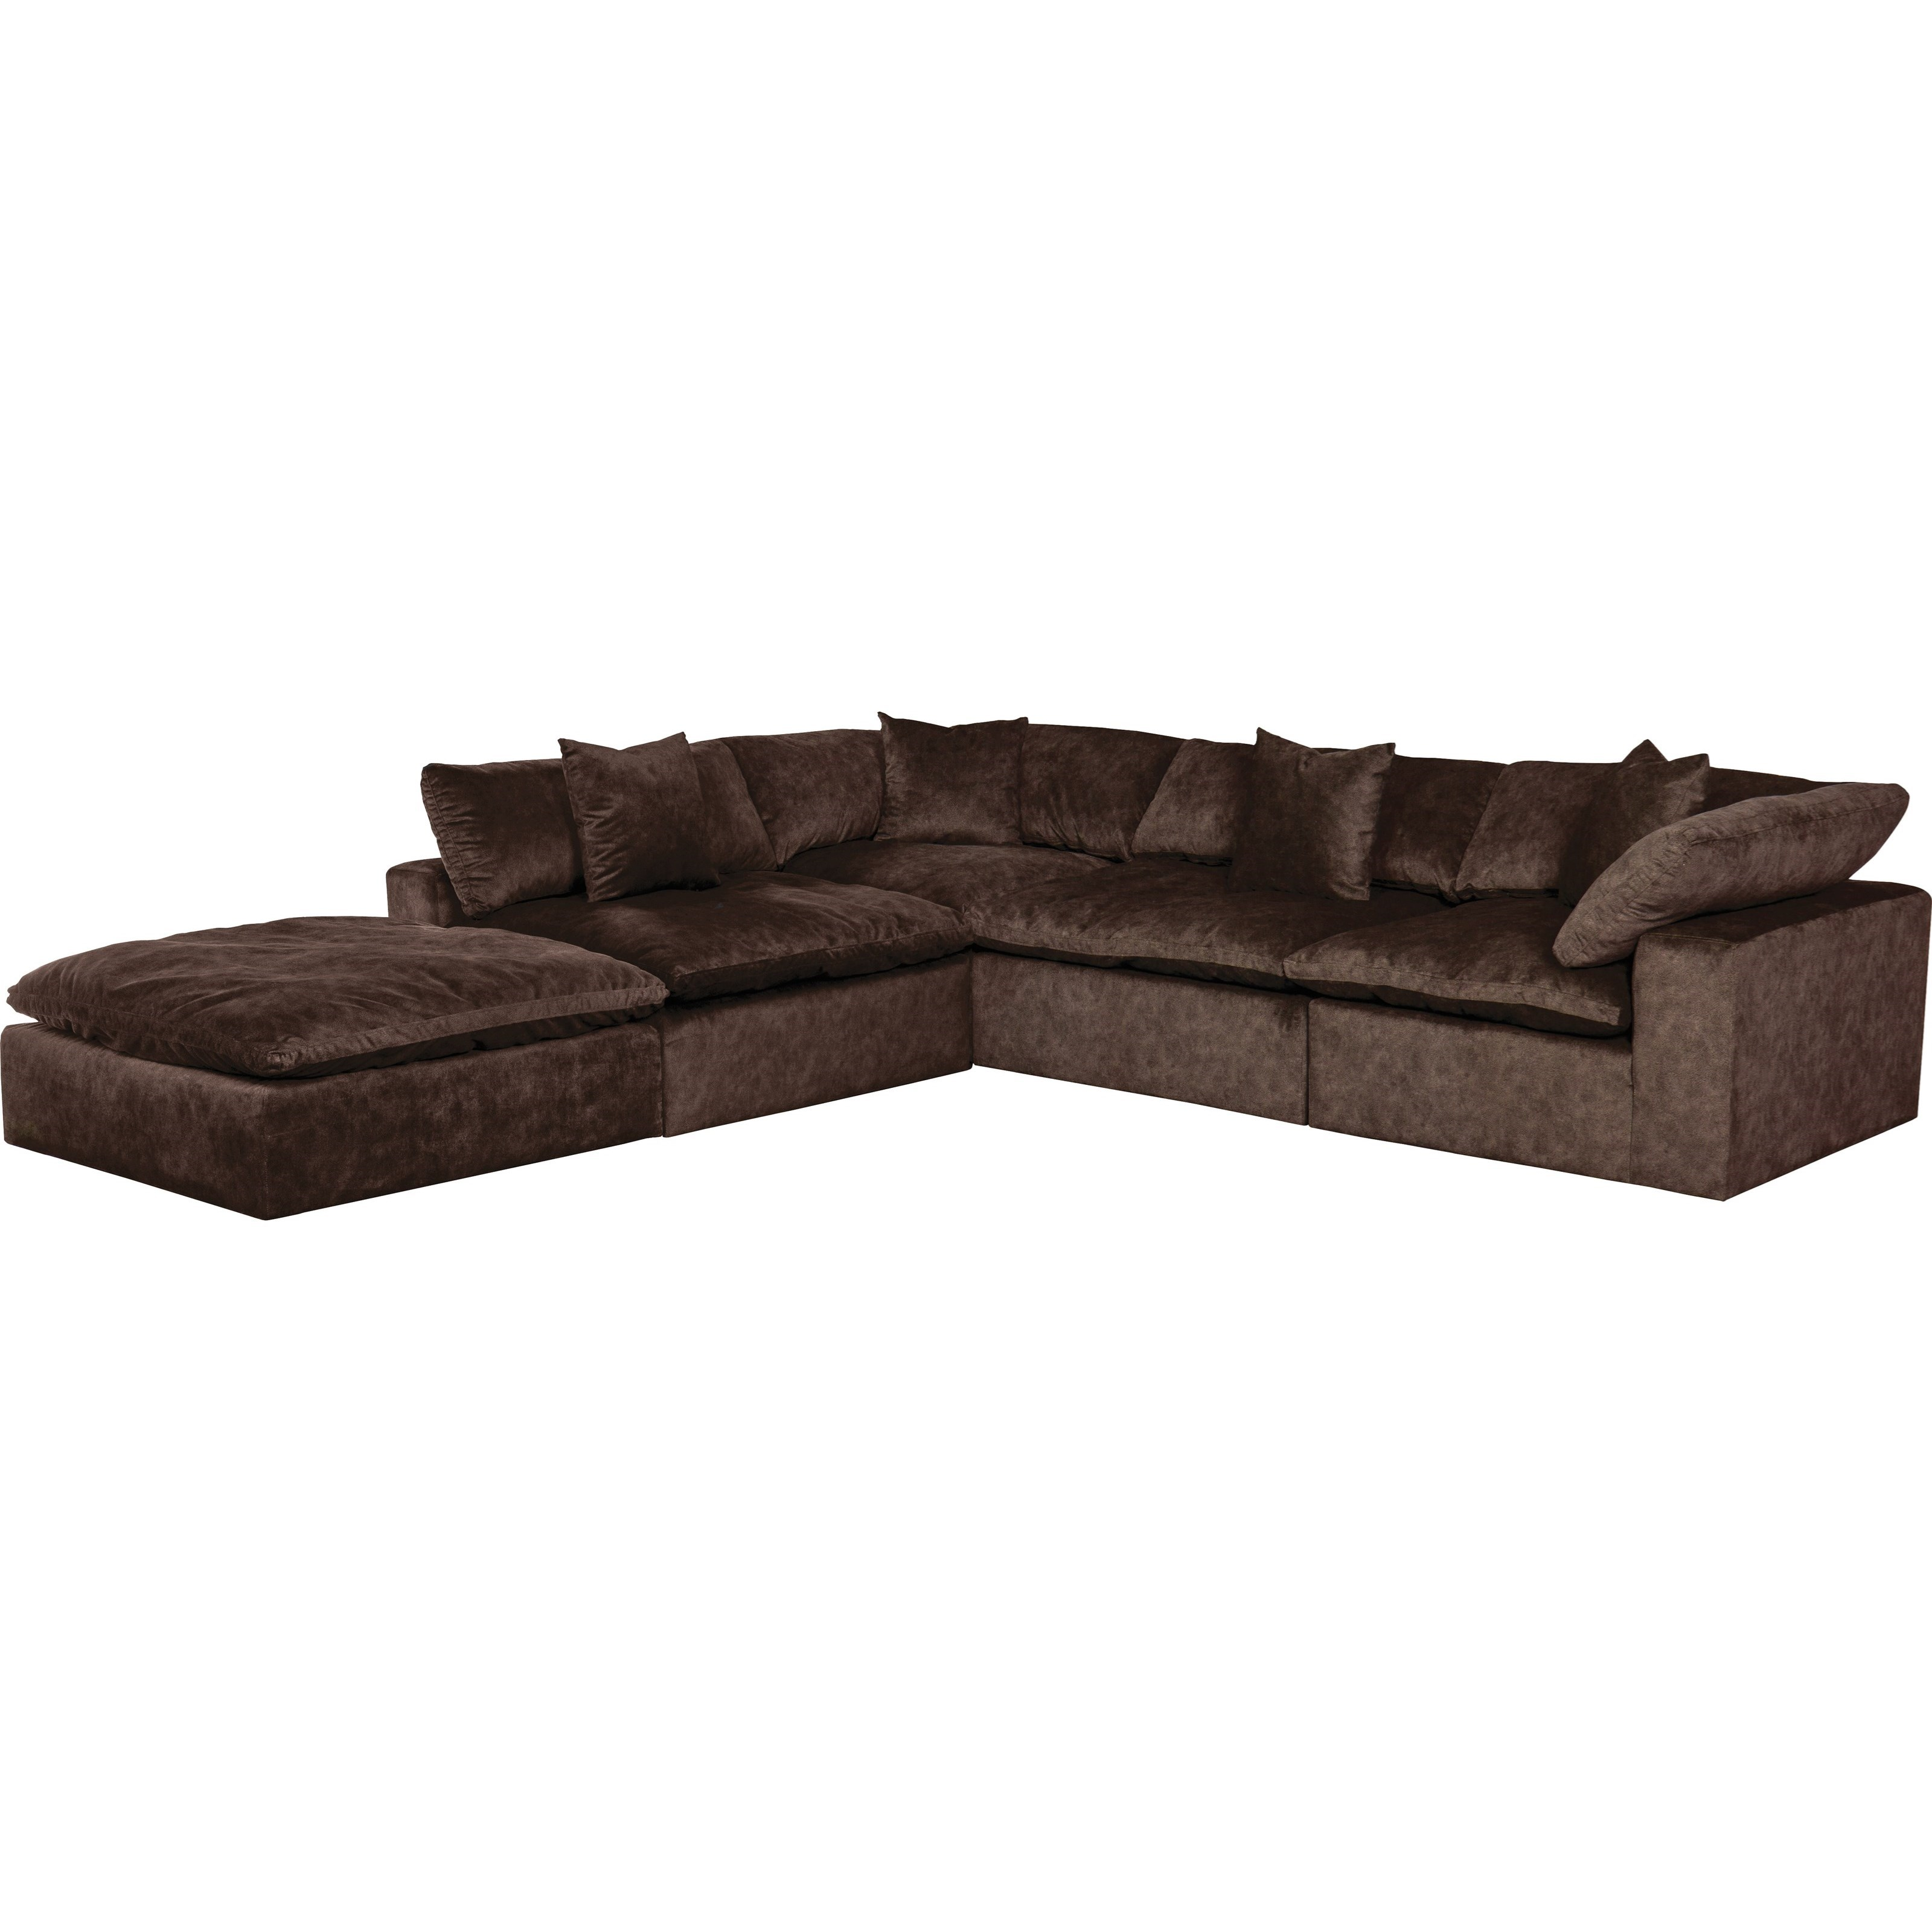 the best attitude 647c3 00b97 Plush L-Shaped Sectional Sofa with Chaise by Jackson Furniture at Lindy's  Furniture Company